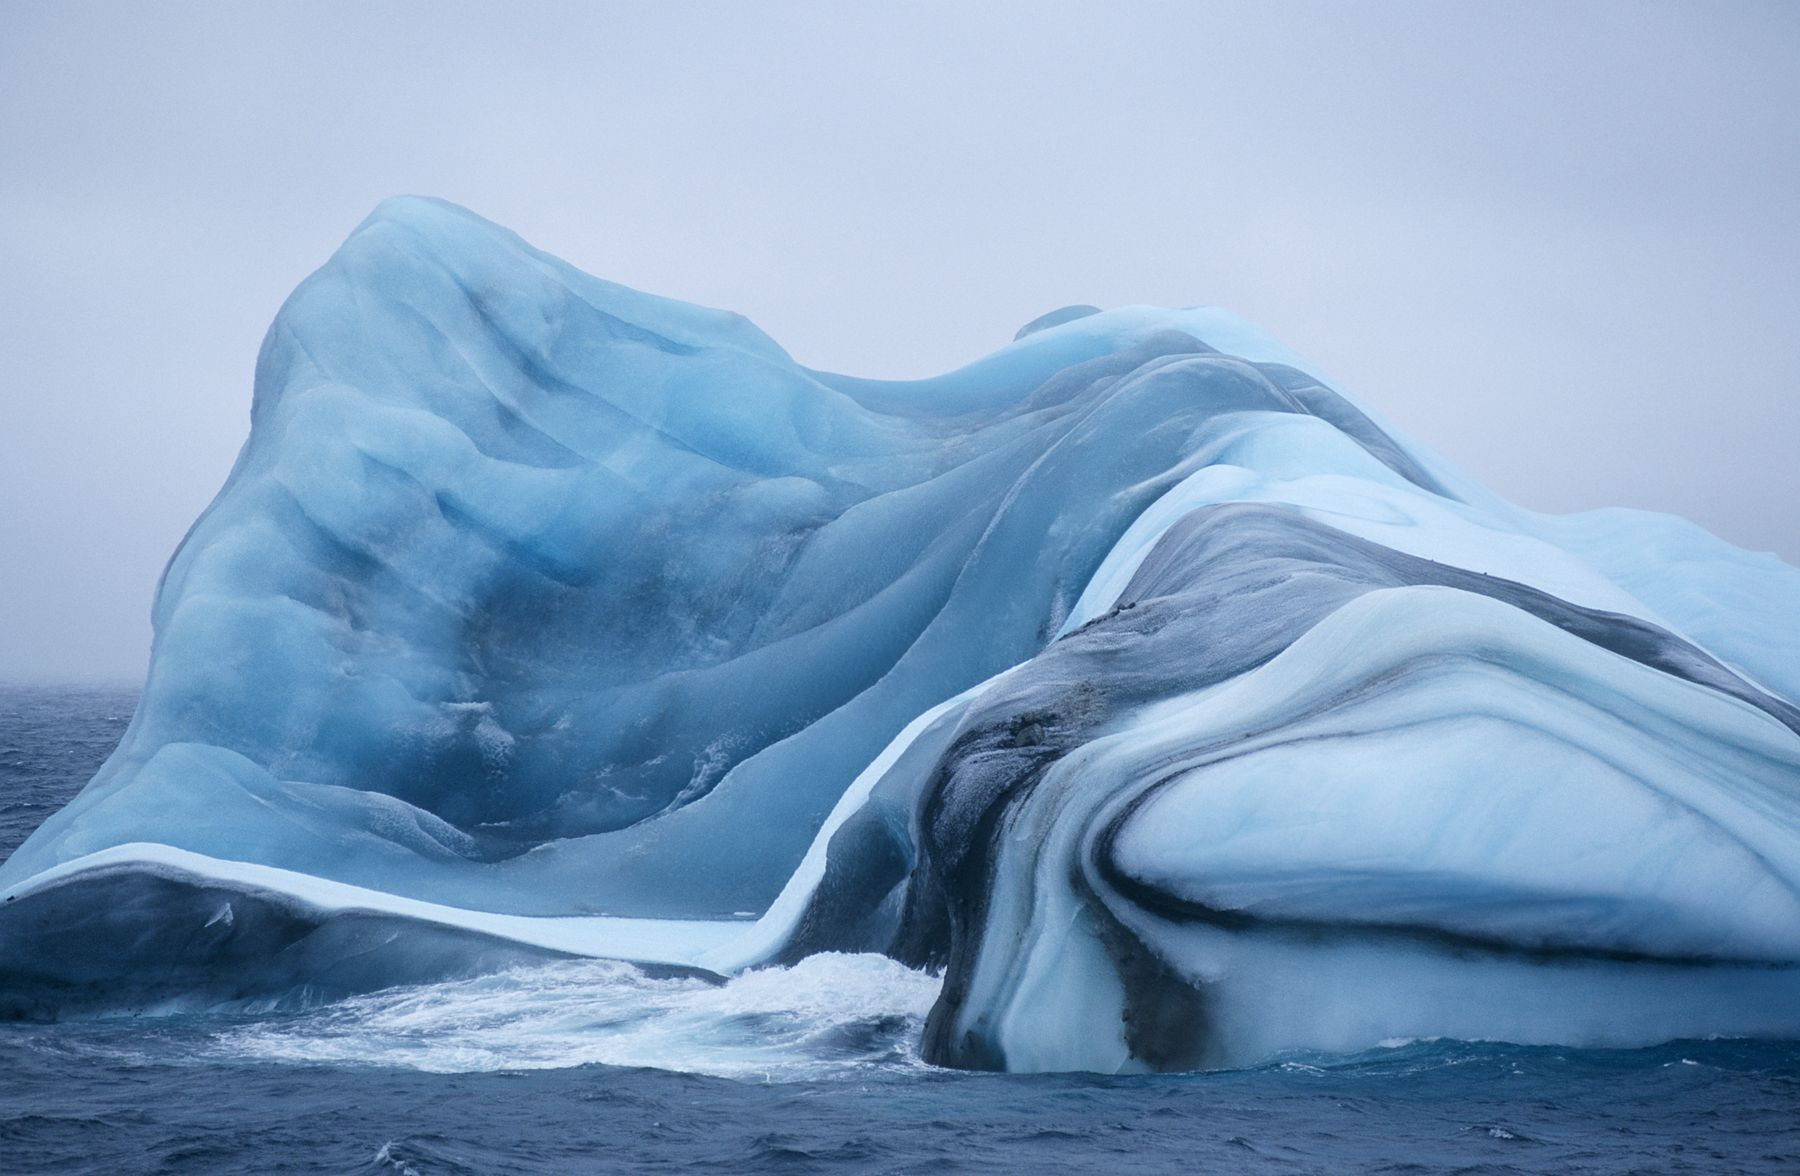 Striped icebergs, Antarctica - 10 amazing natural wonders of the world